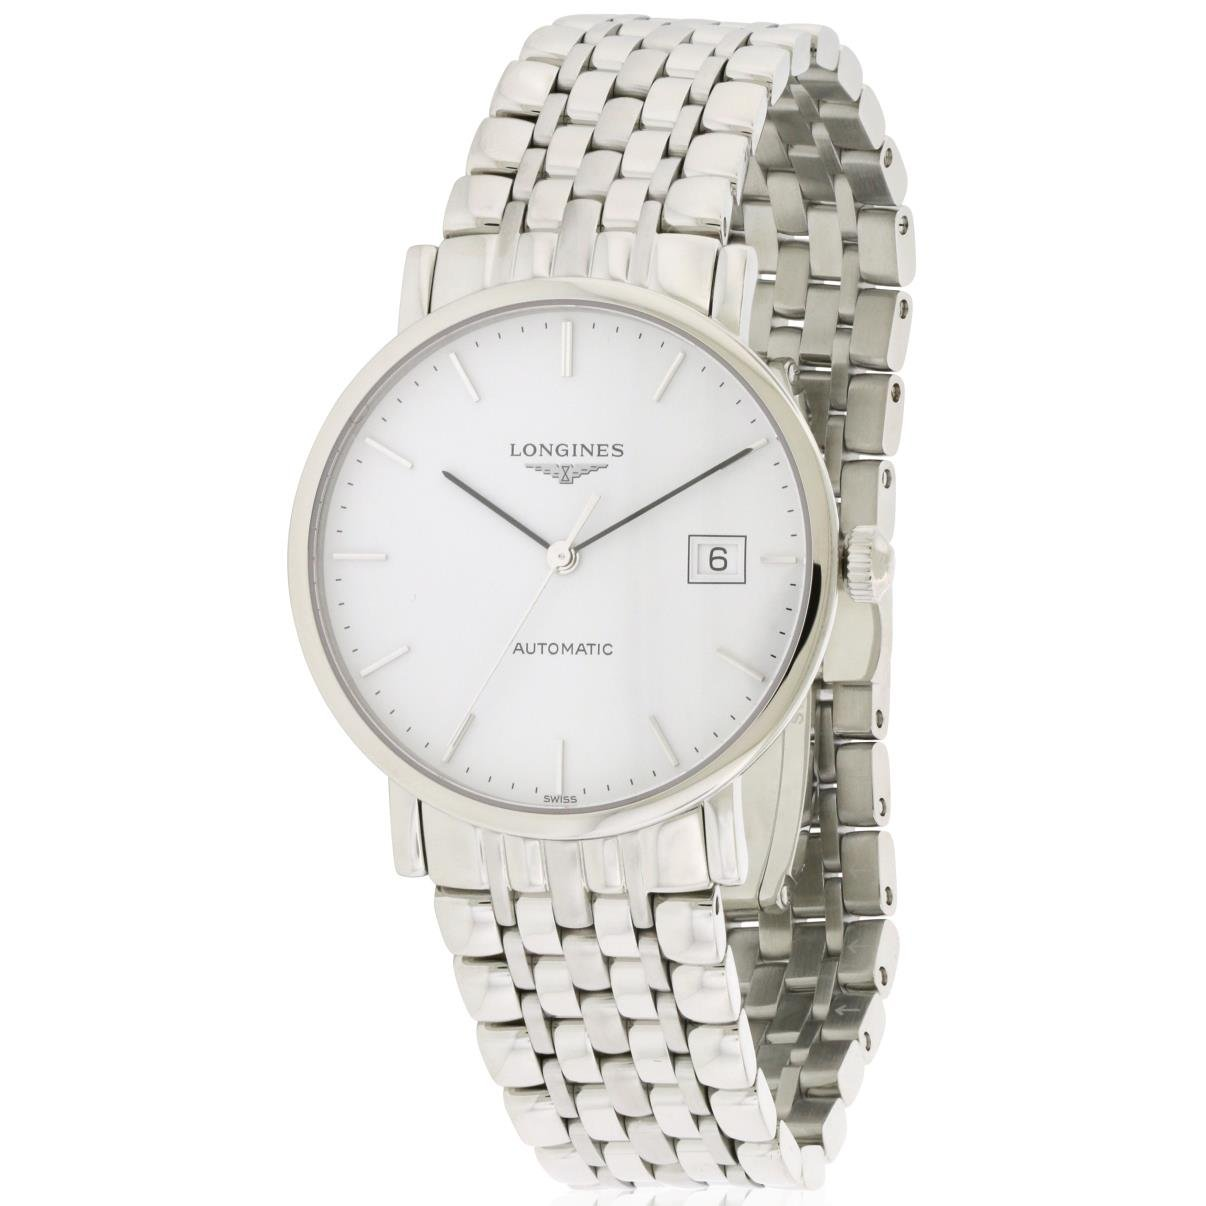 Longines L48104126 Elegant Mens Watch - White Dial Stainless Steel Case Automatic Movement